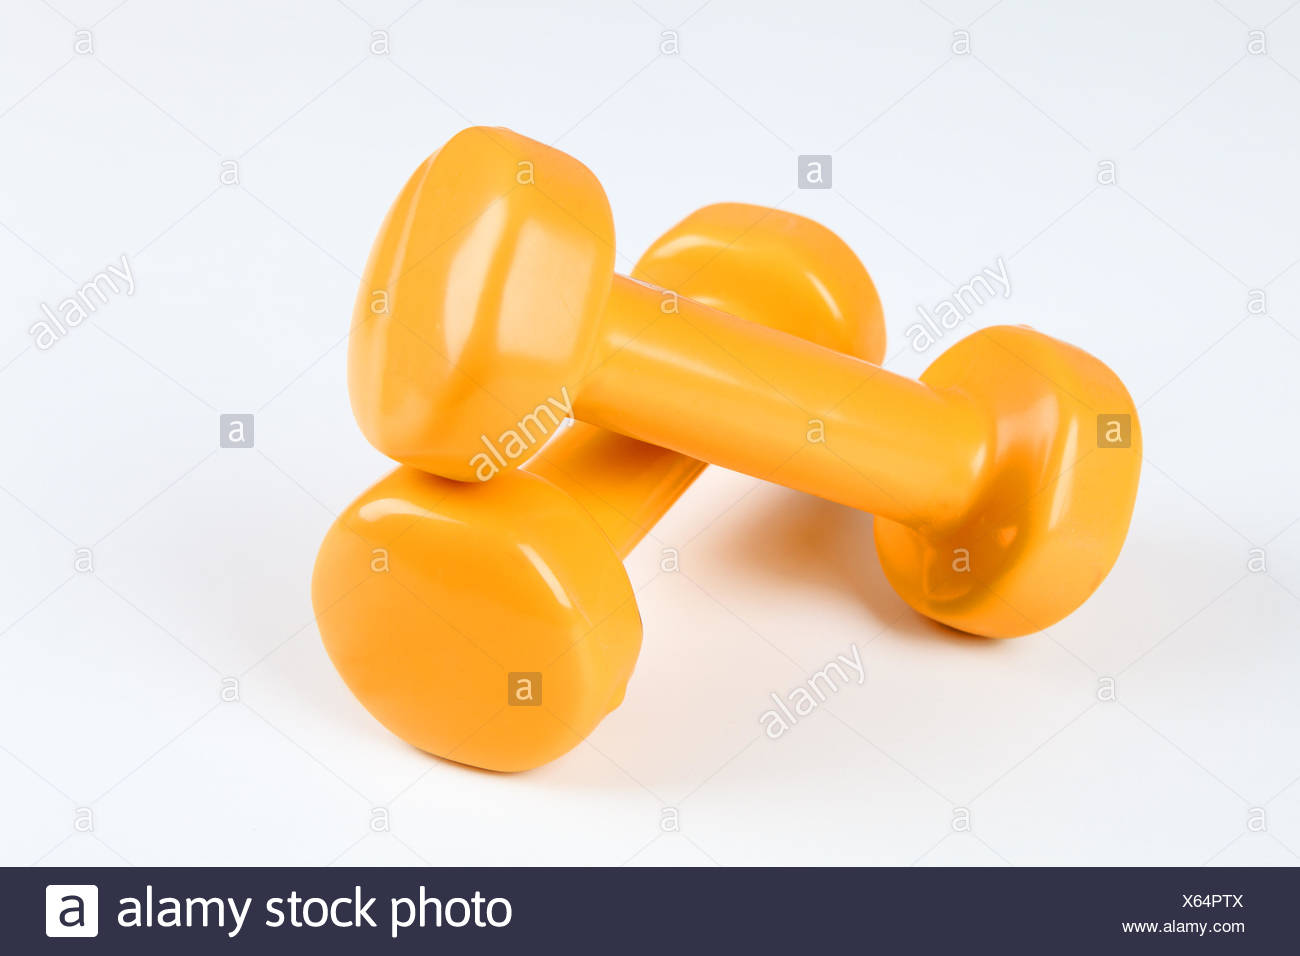 free weights - Stock Image